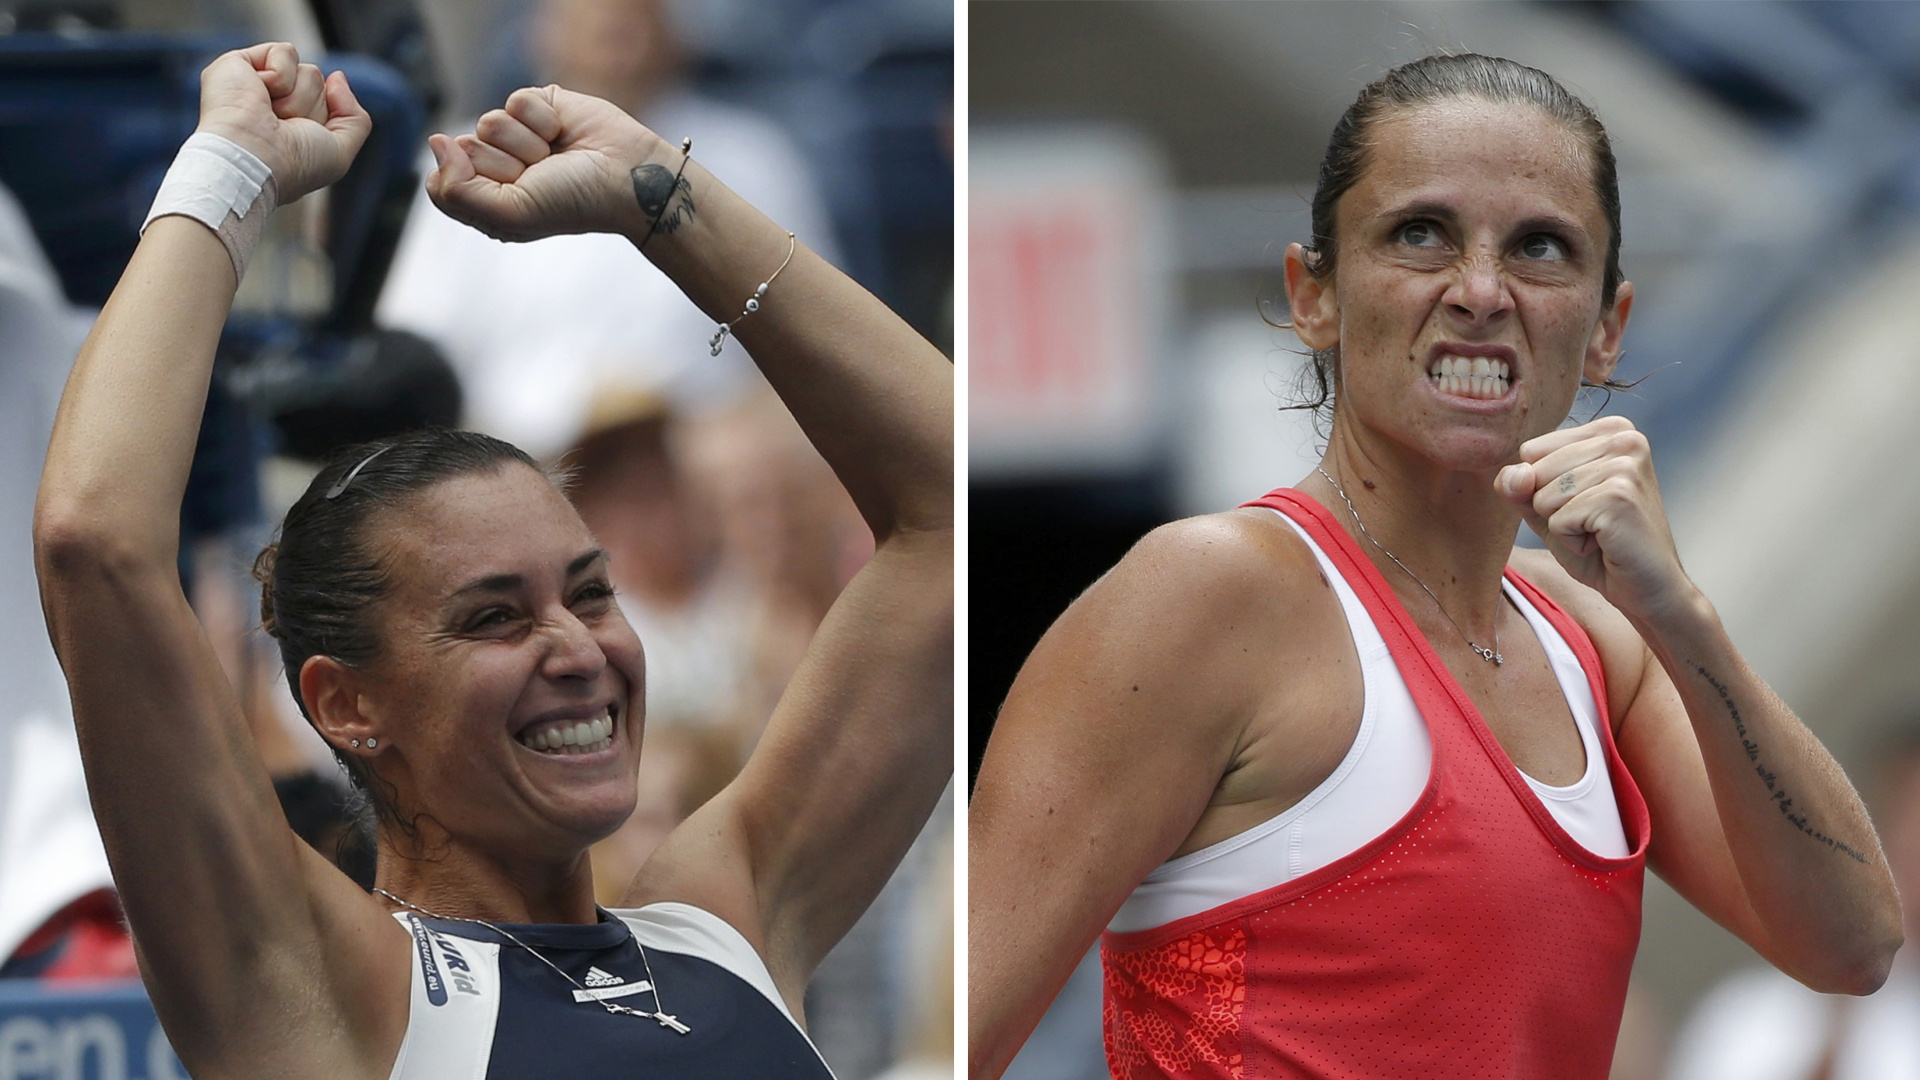 Flavia Pennetta of Italy reacts after defeating Simona Halep of Romania in their women's singles semi-final match at the U.S. Open Championships tennis tournament in New York, September 11, 2015.  REUTERS/Mike Segar